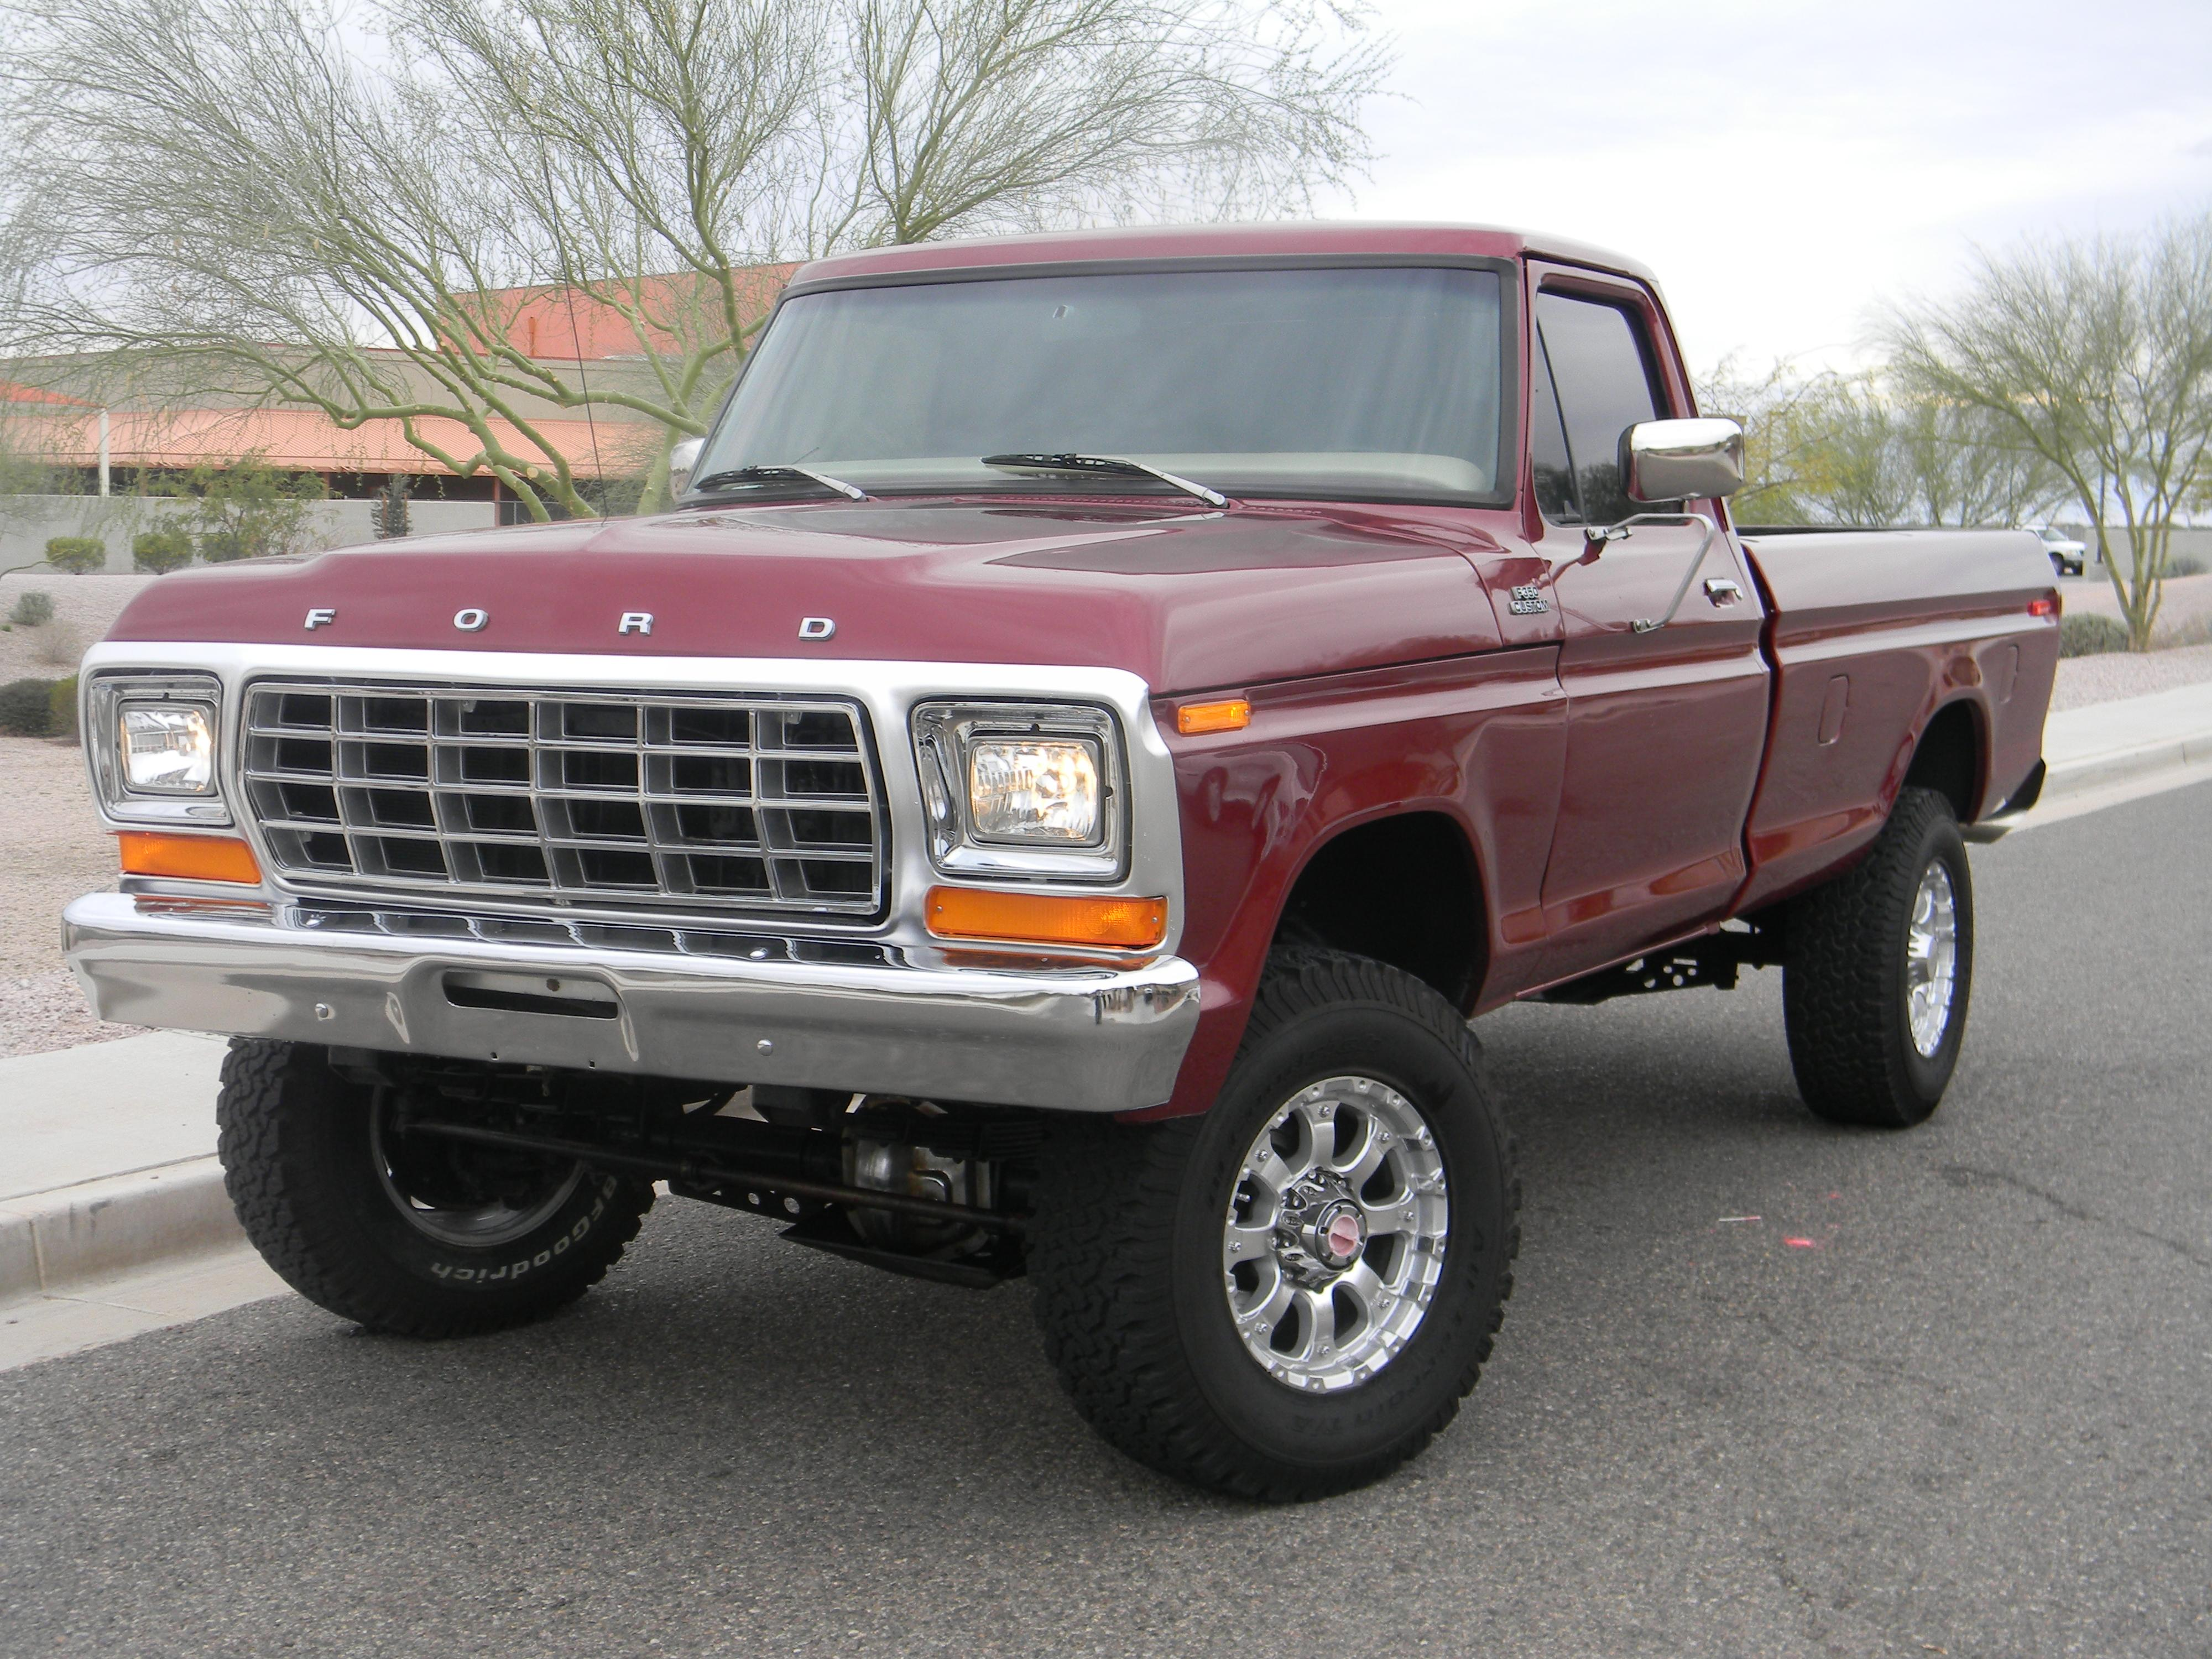 beltran727 1979 ford f350 regular cab specs photos modification rh cardomain com 1980 Ford F 350 Colors That Year 1985 Ford F -150